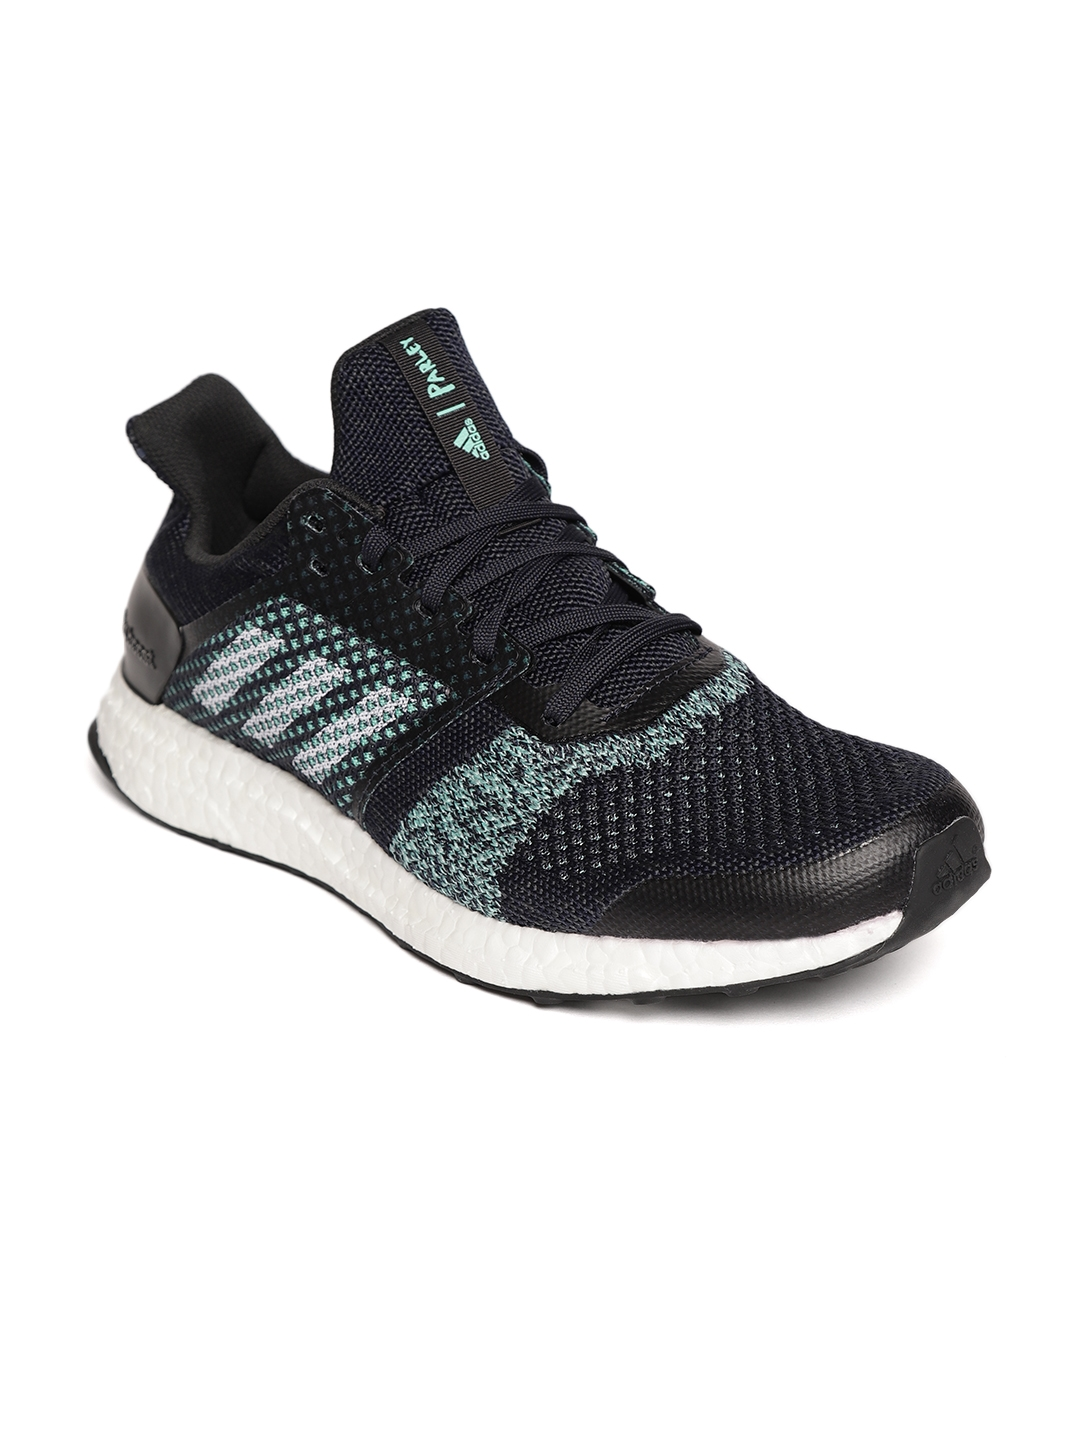 abca4b66d Buy ADIDAS Men Navy Blue   Sea Green Ultraboost ST M Parley Running ...